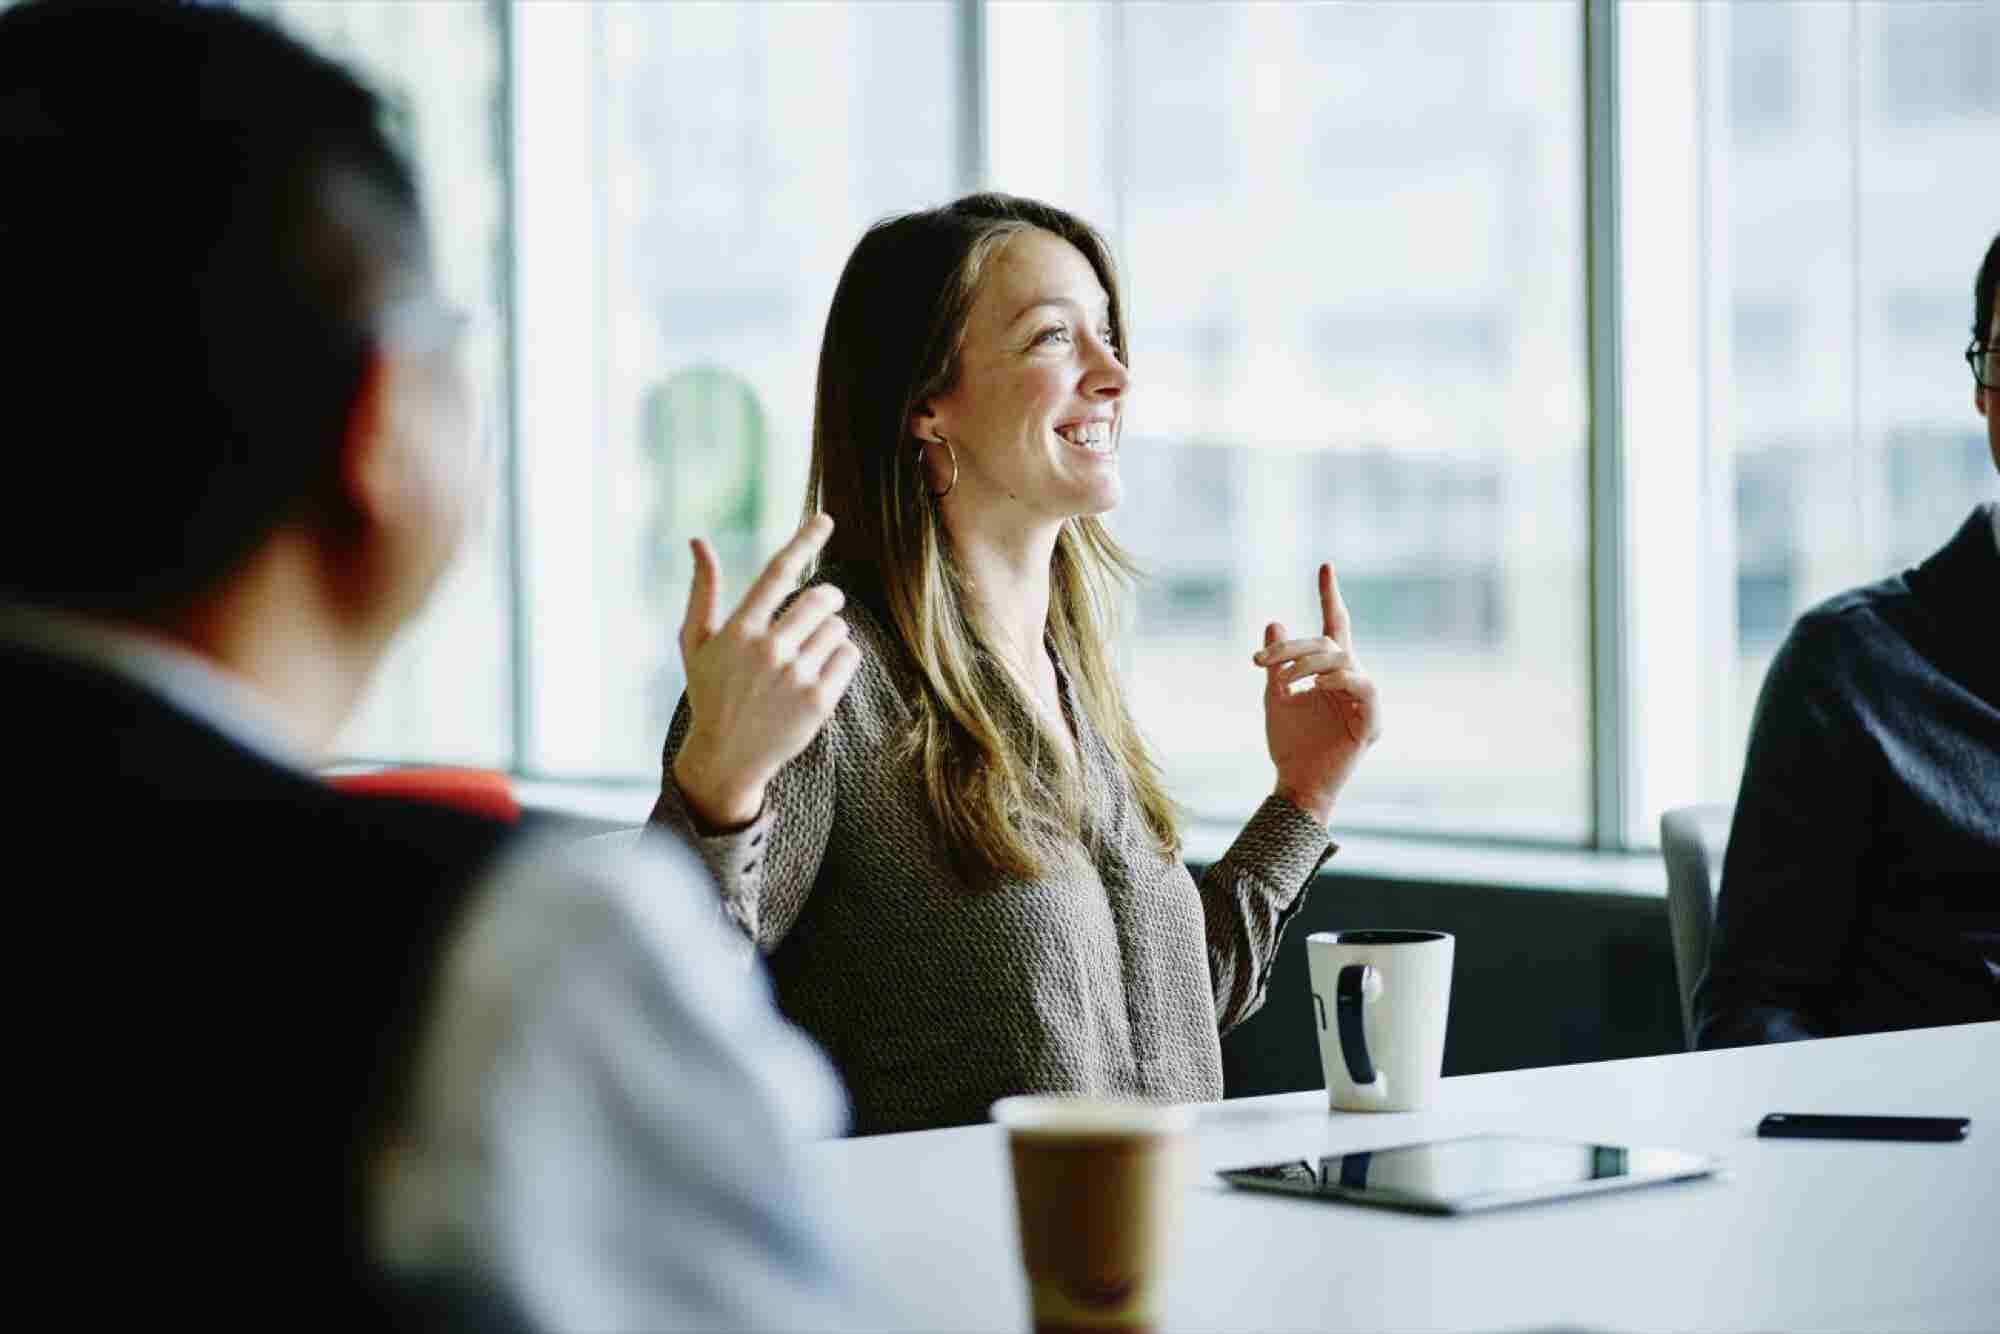 Head Into Your Next Male-Dominated Meeting Ready to Contribute by Foll...